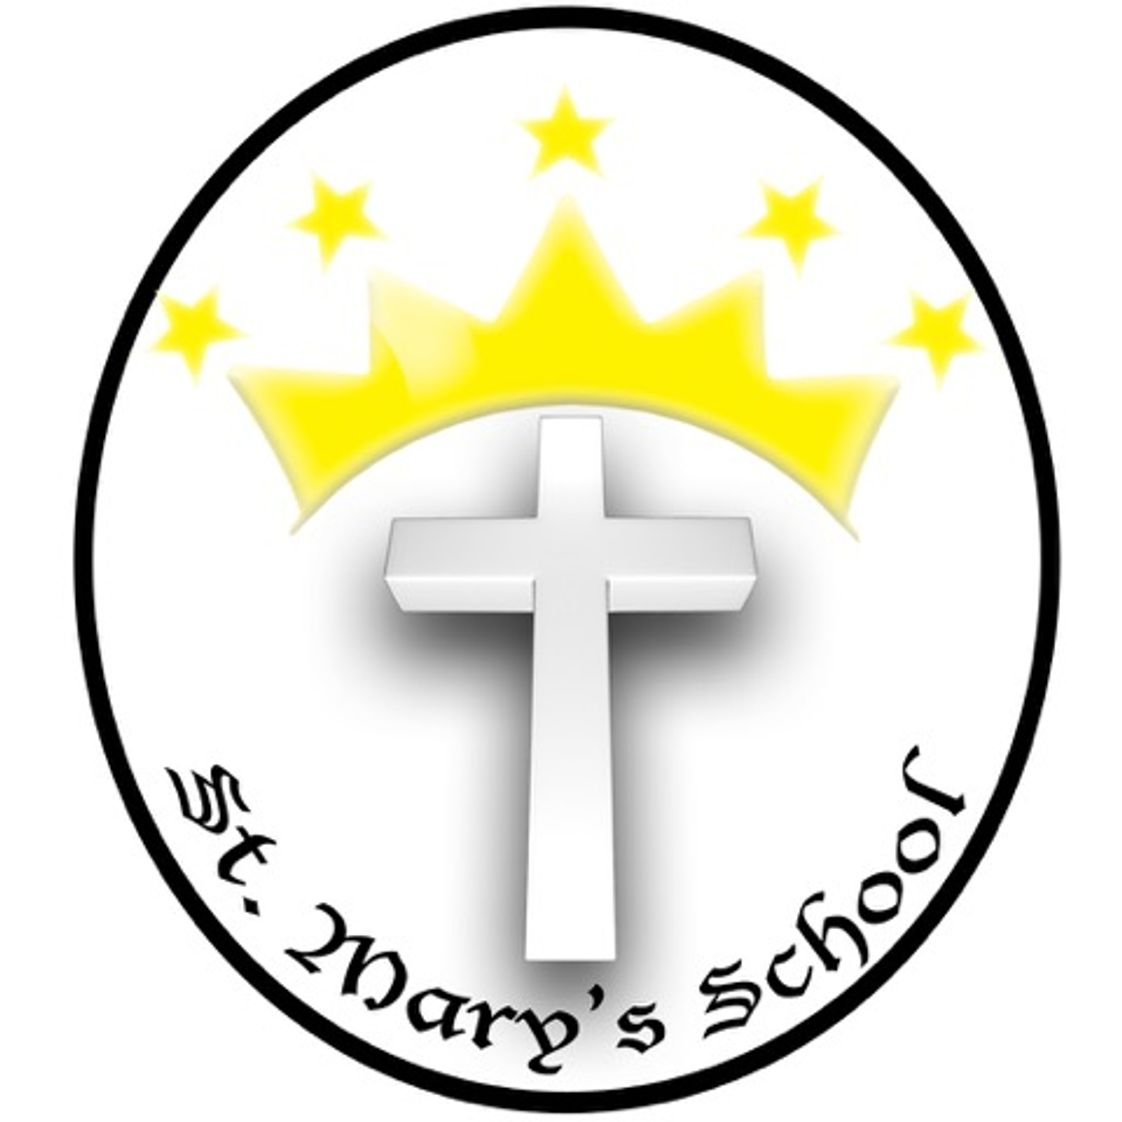 St. Mary's School Photo - Our logo.